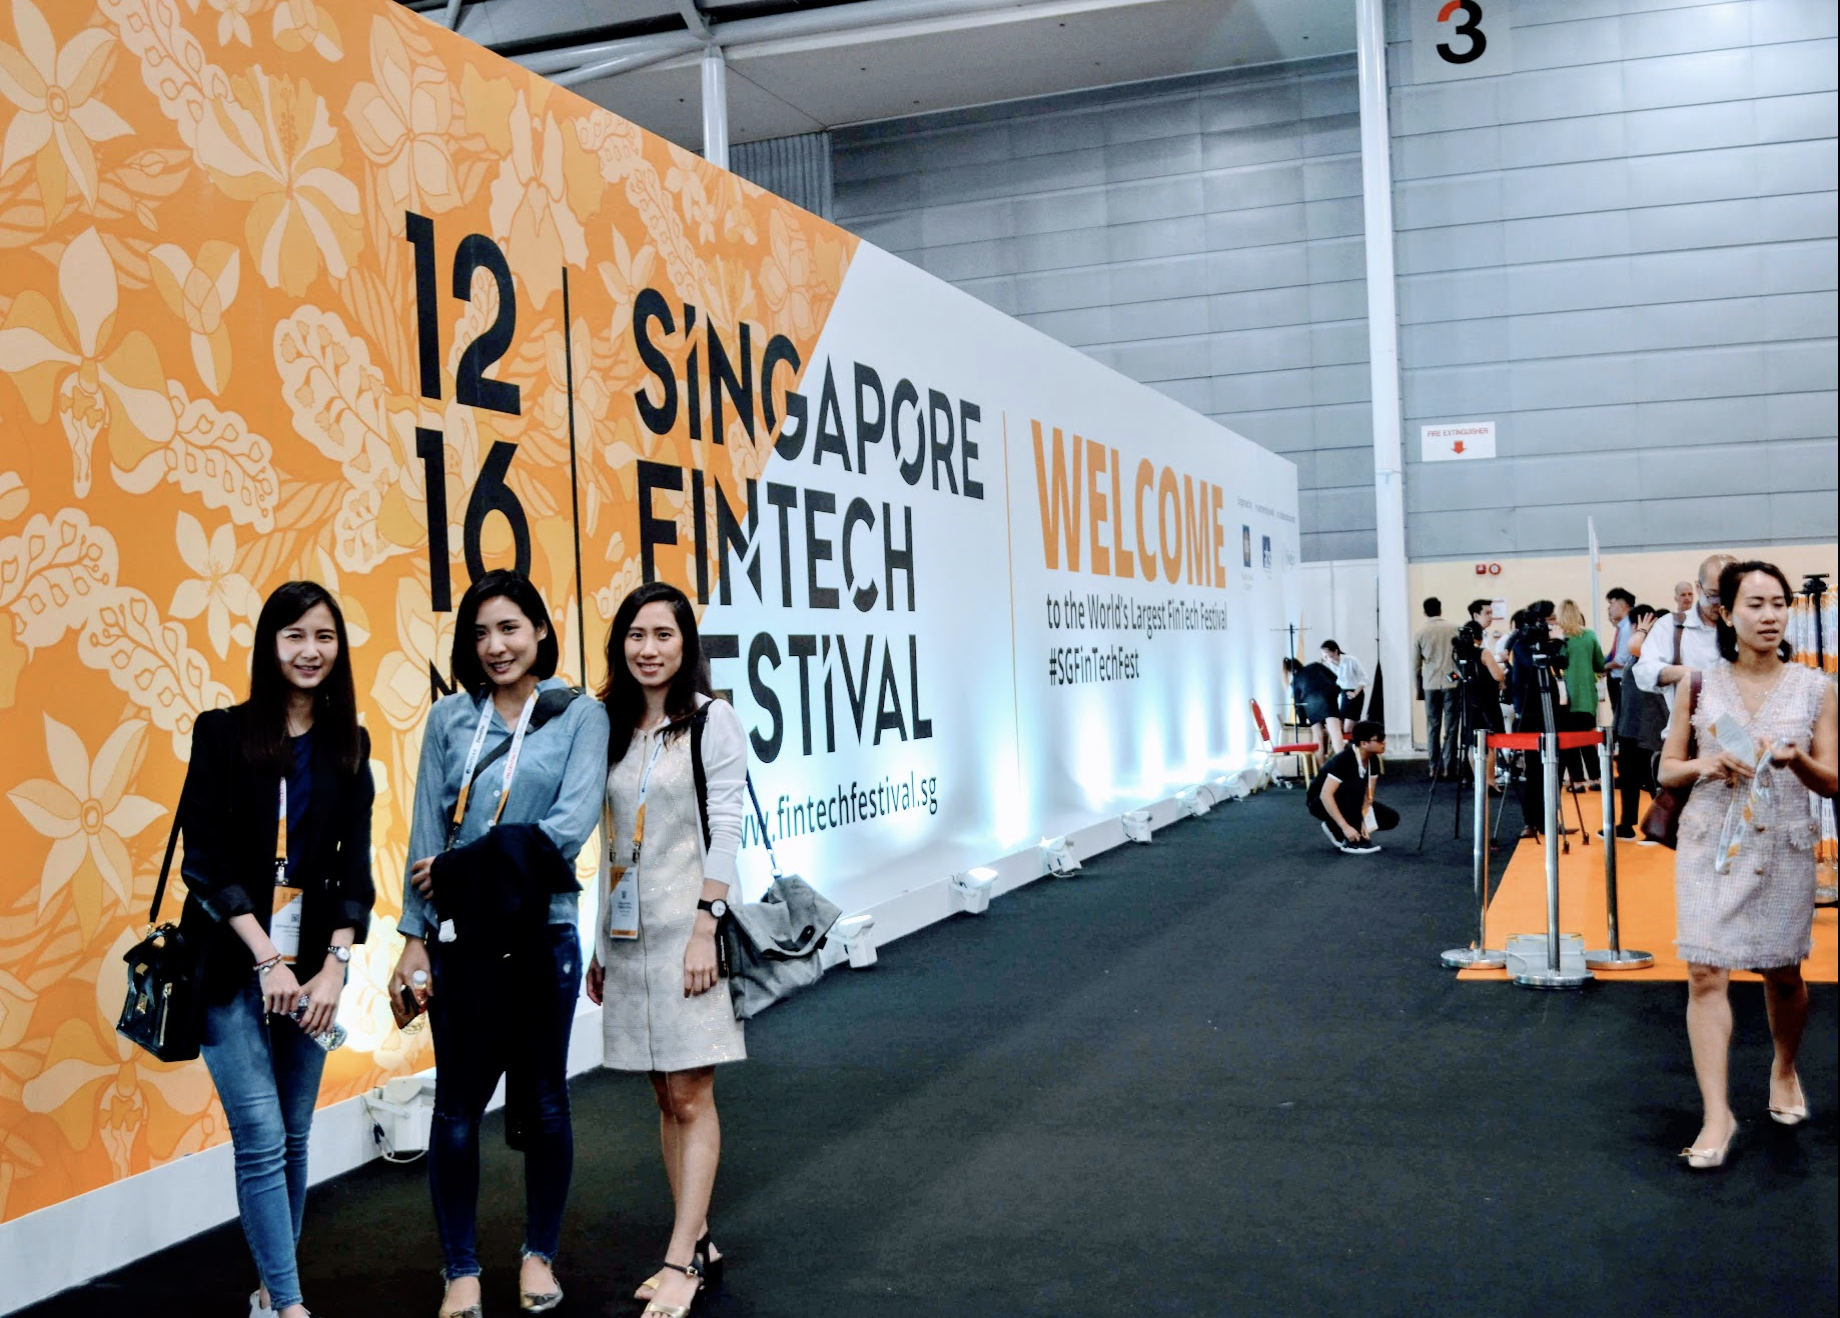 Singapore Fintech Festival featured more than 250 speakers and almost 500 exhibitors from different countries of the world. Photo: Connected to India.